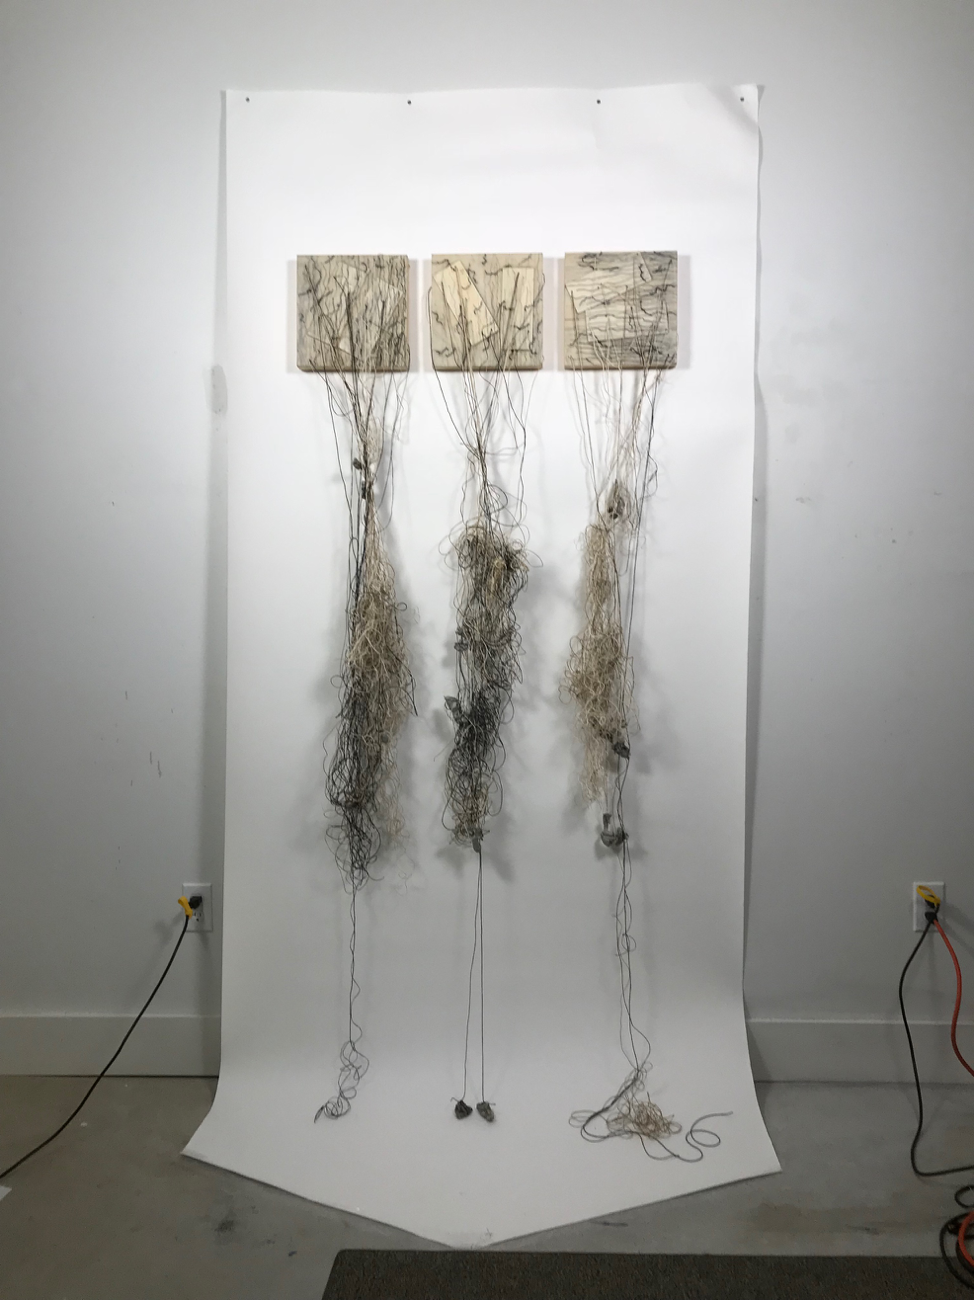 "One of several new series as yet untitled: Encaustic, balsa wood, graphite, tin ingots, oil stick, jute and twine on 10"" x 10"" cradled birch panel"